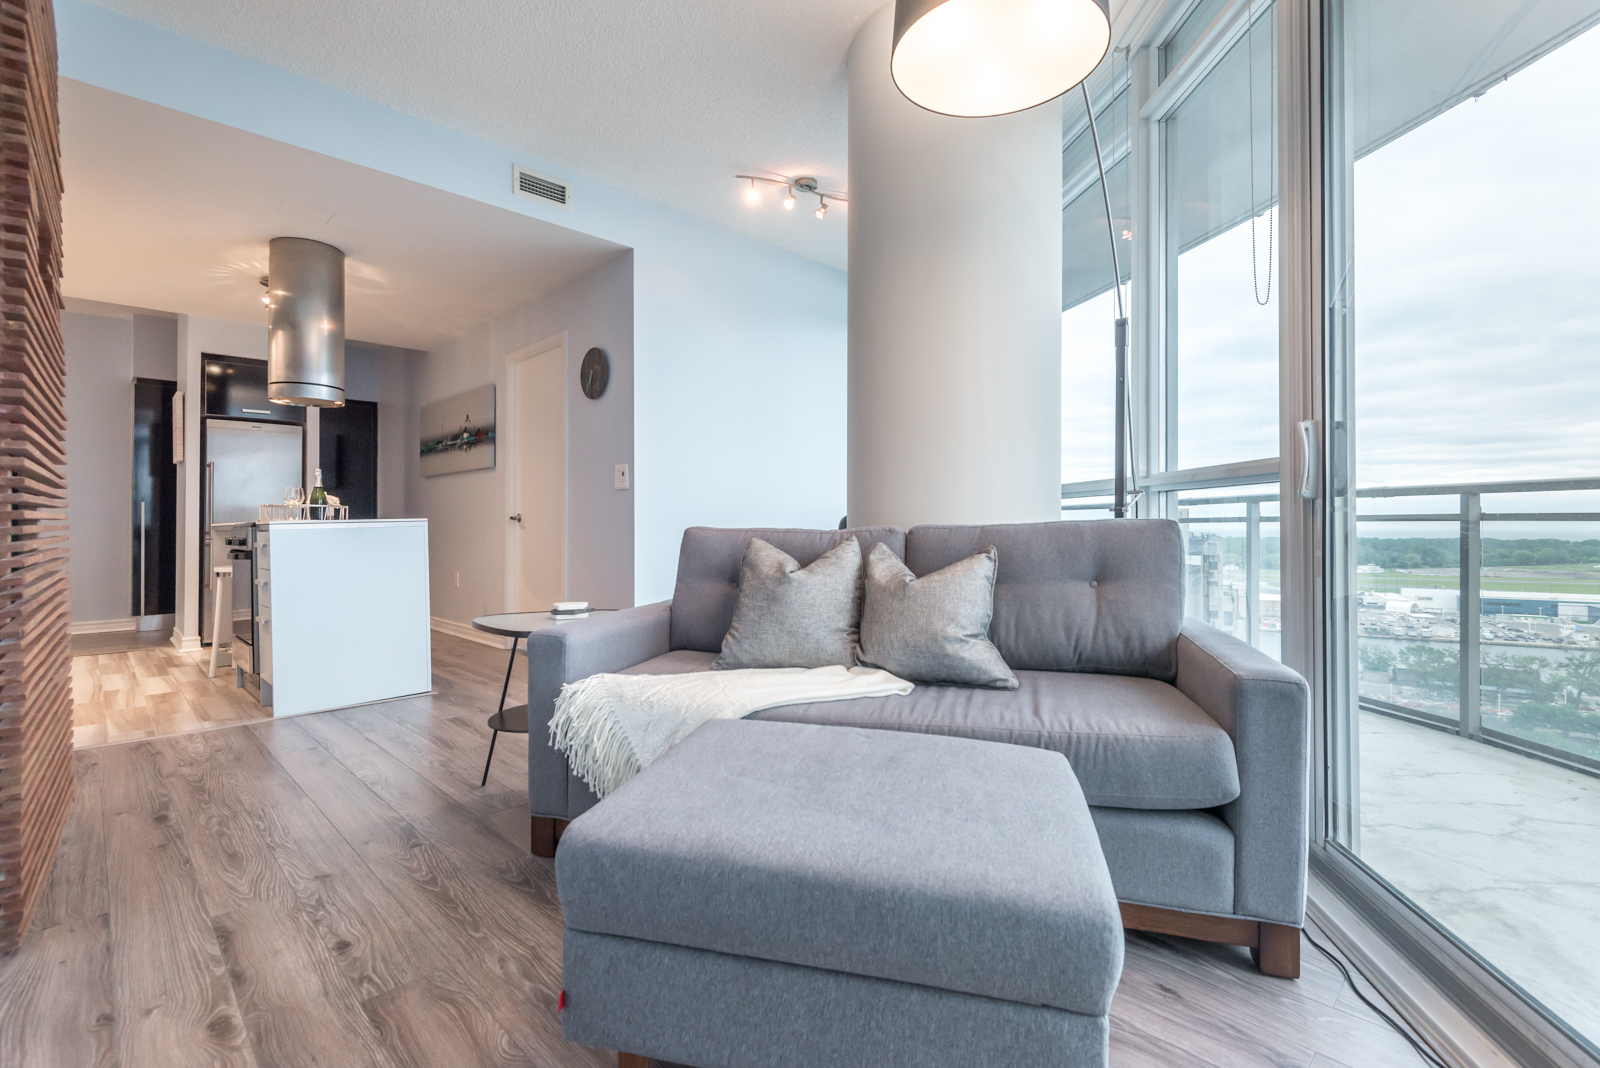 Image of condo's rather tall ceilings and we also see kitchen in background.